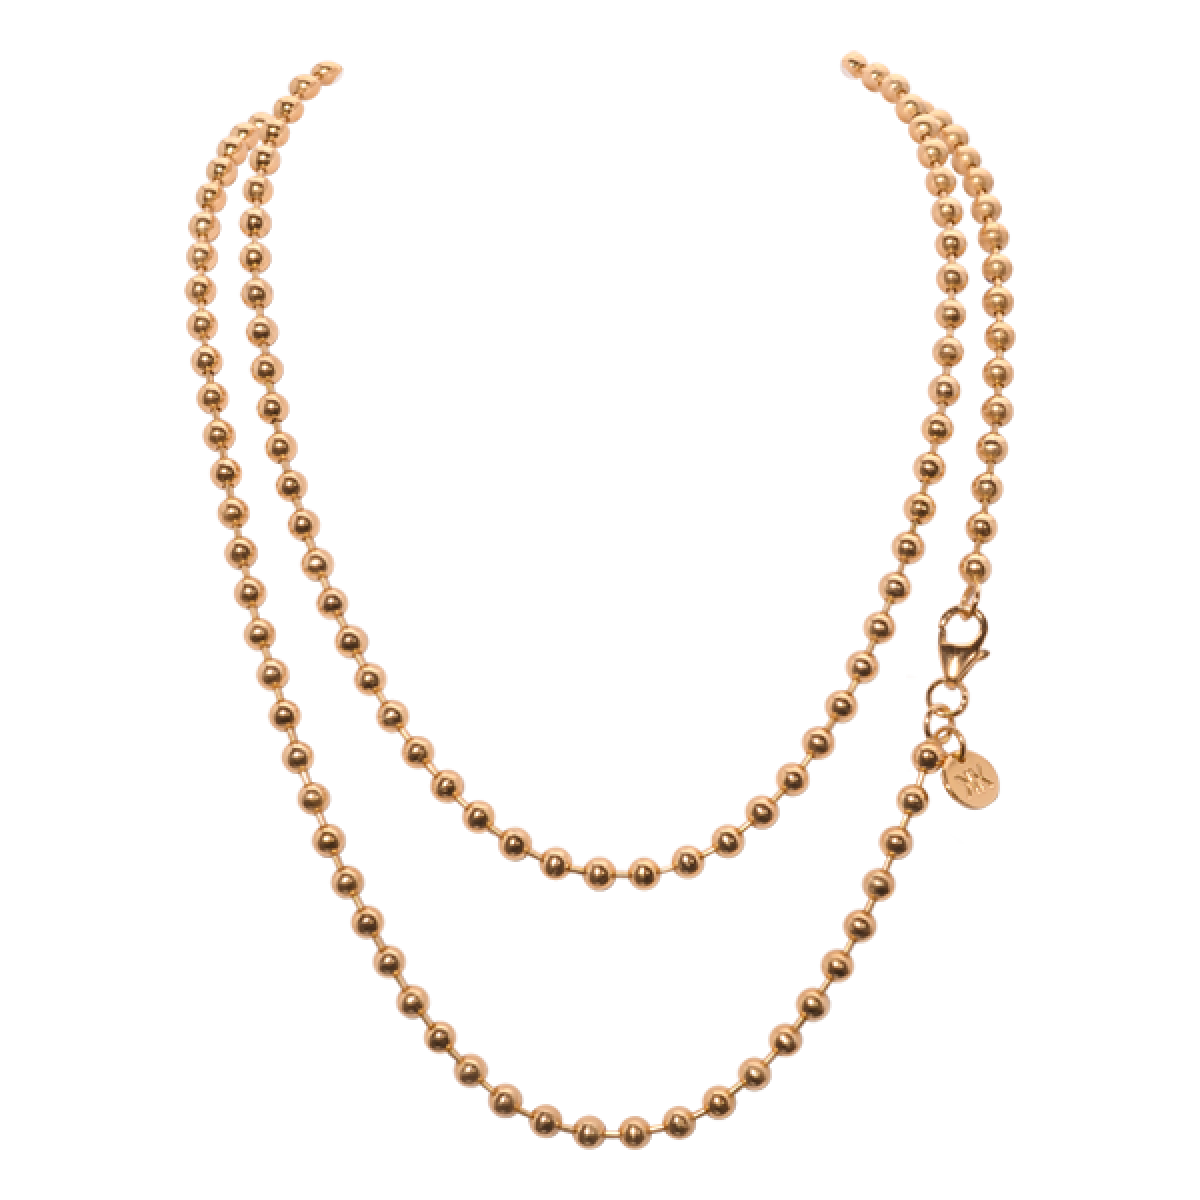 transparent stock Chain HD PNG Transparent Chain HD